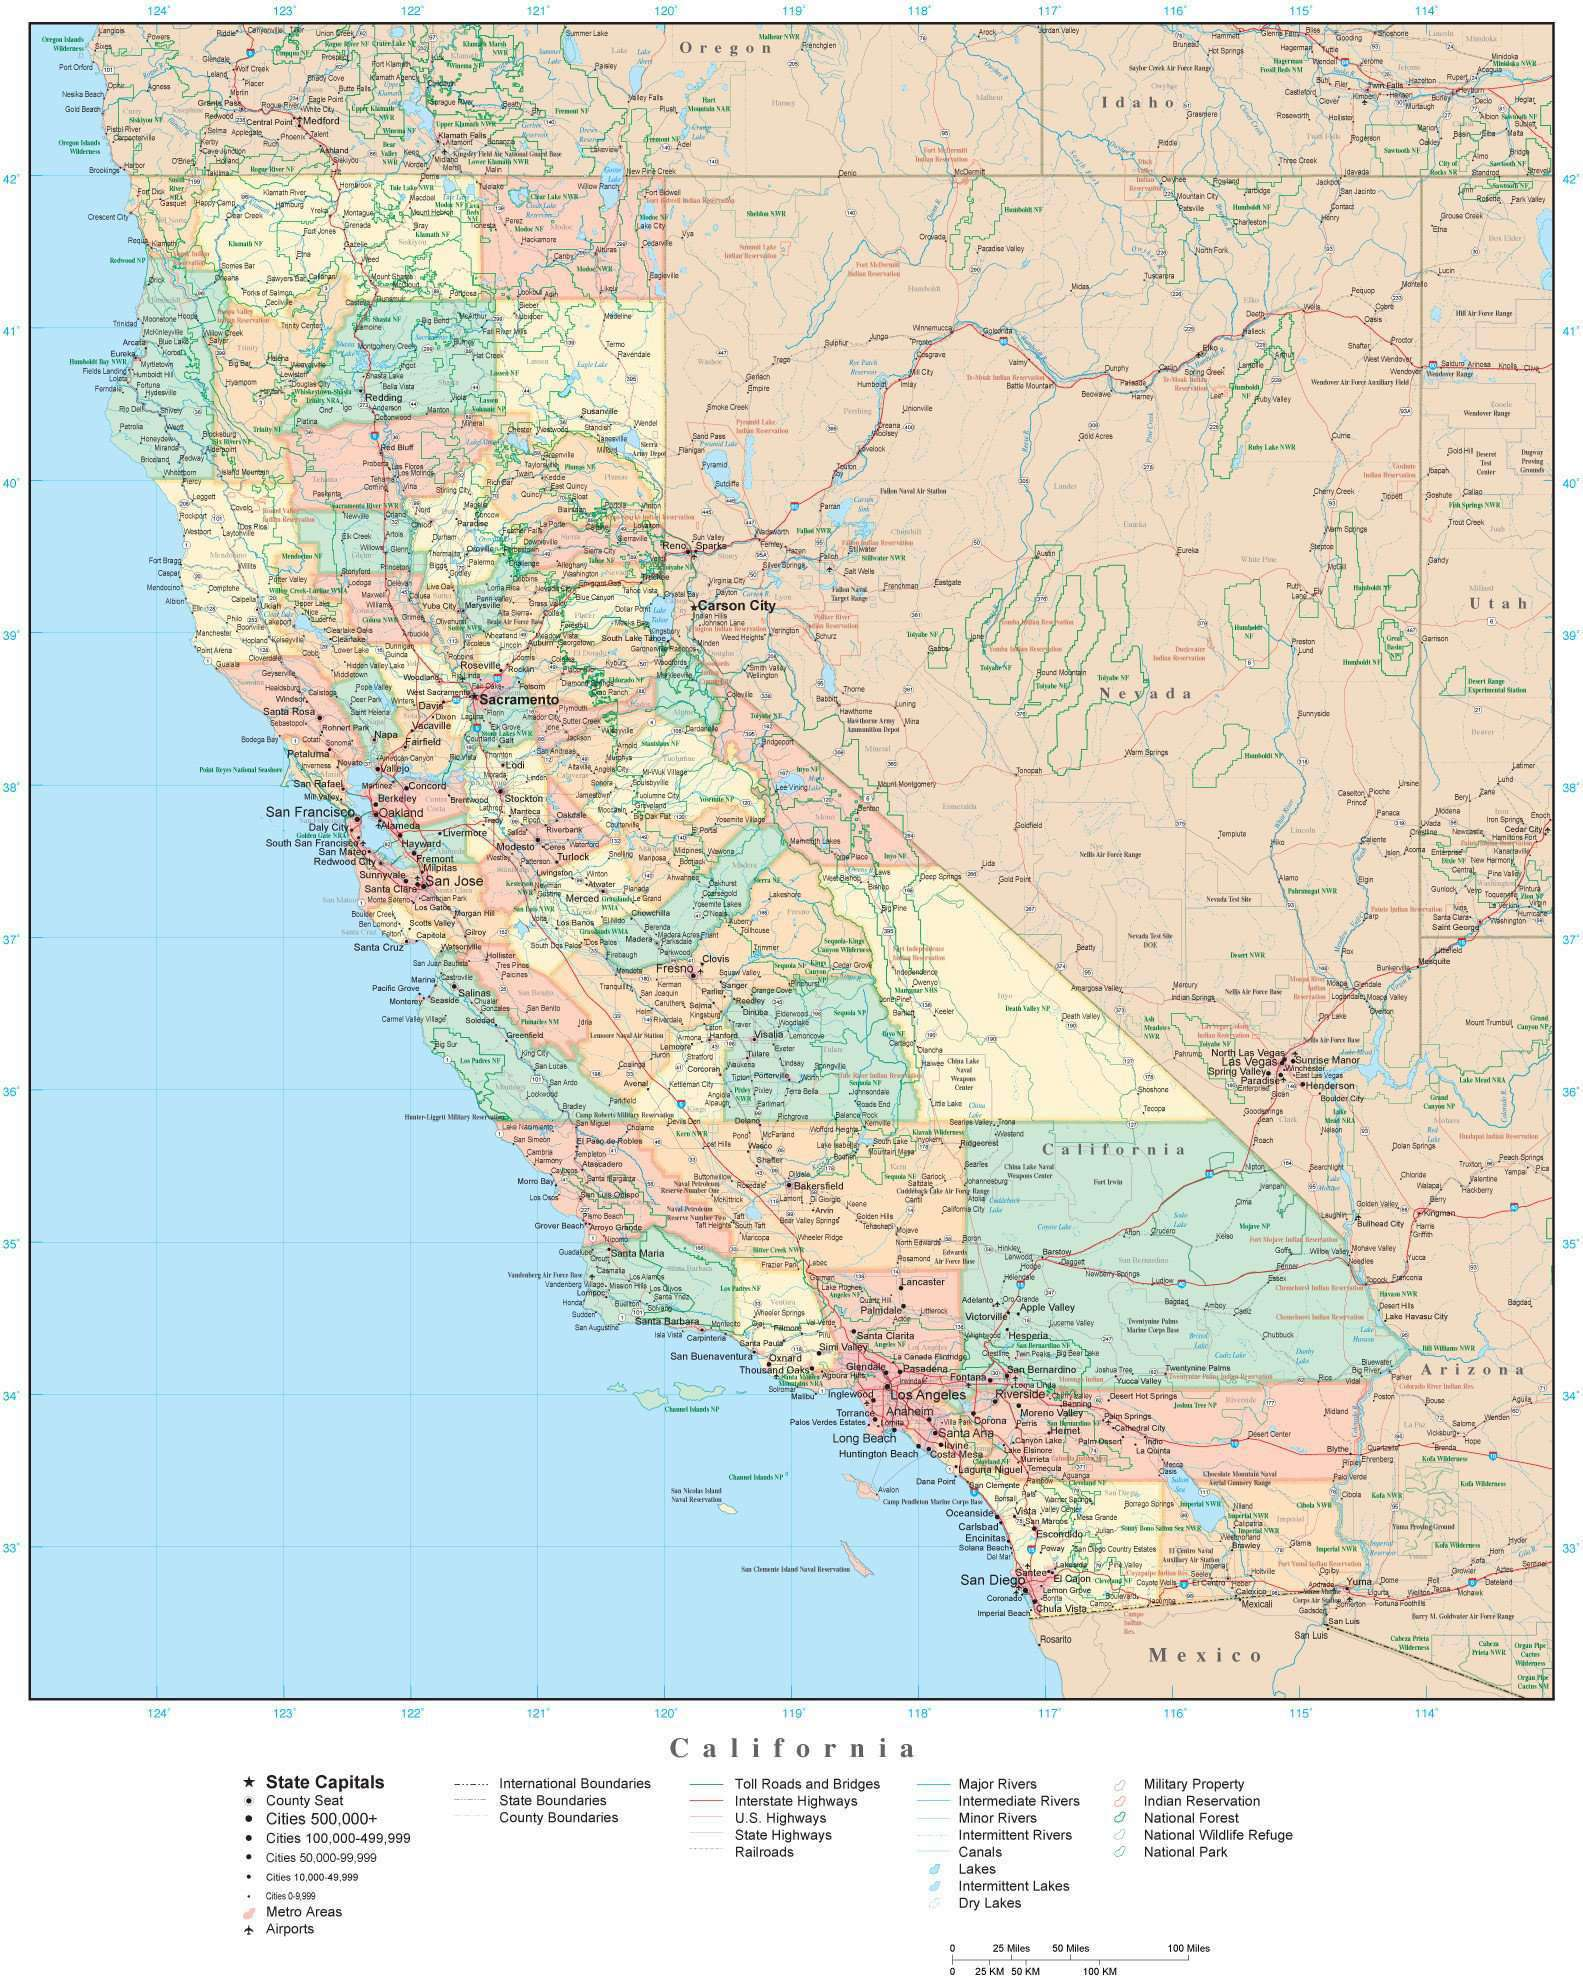 California State Map In Adobe Illustrator Vector Format Detailed